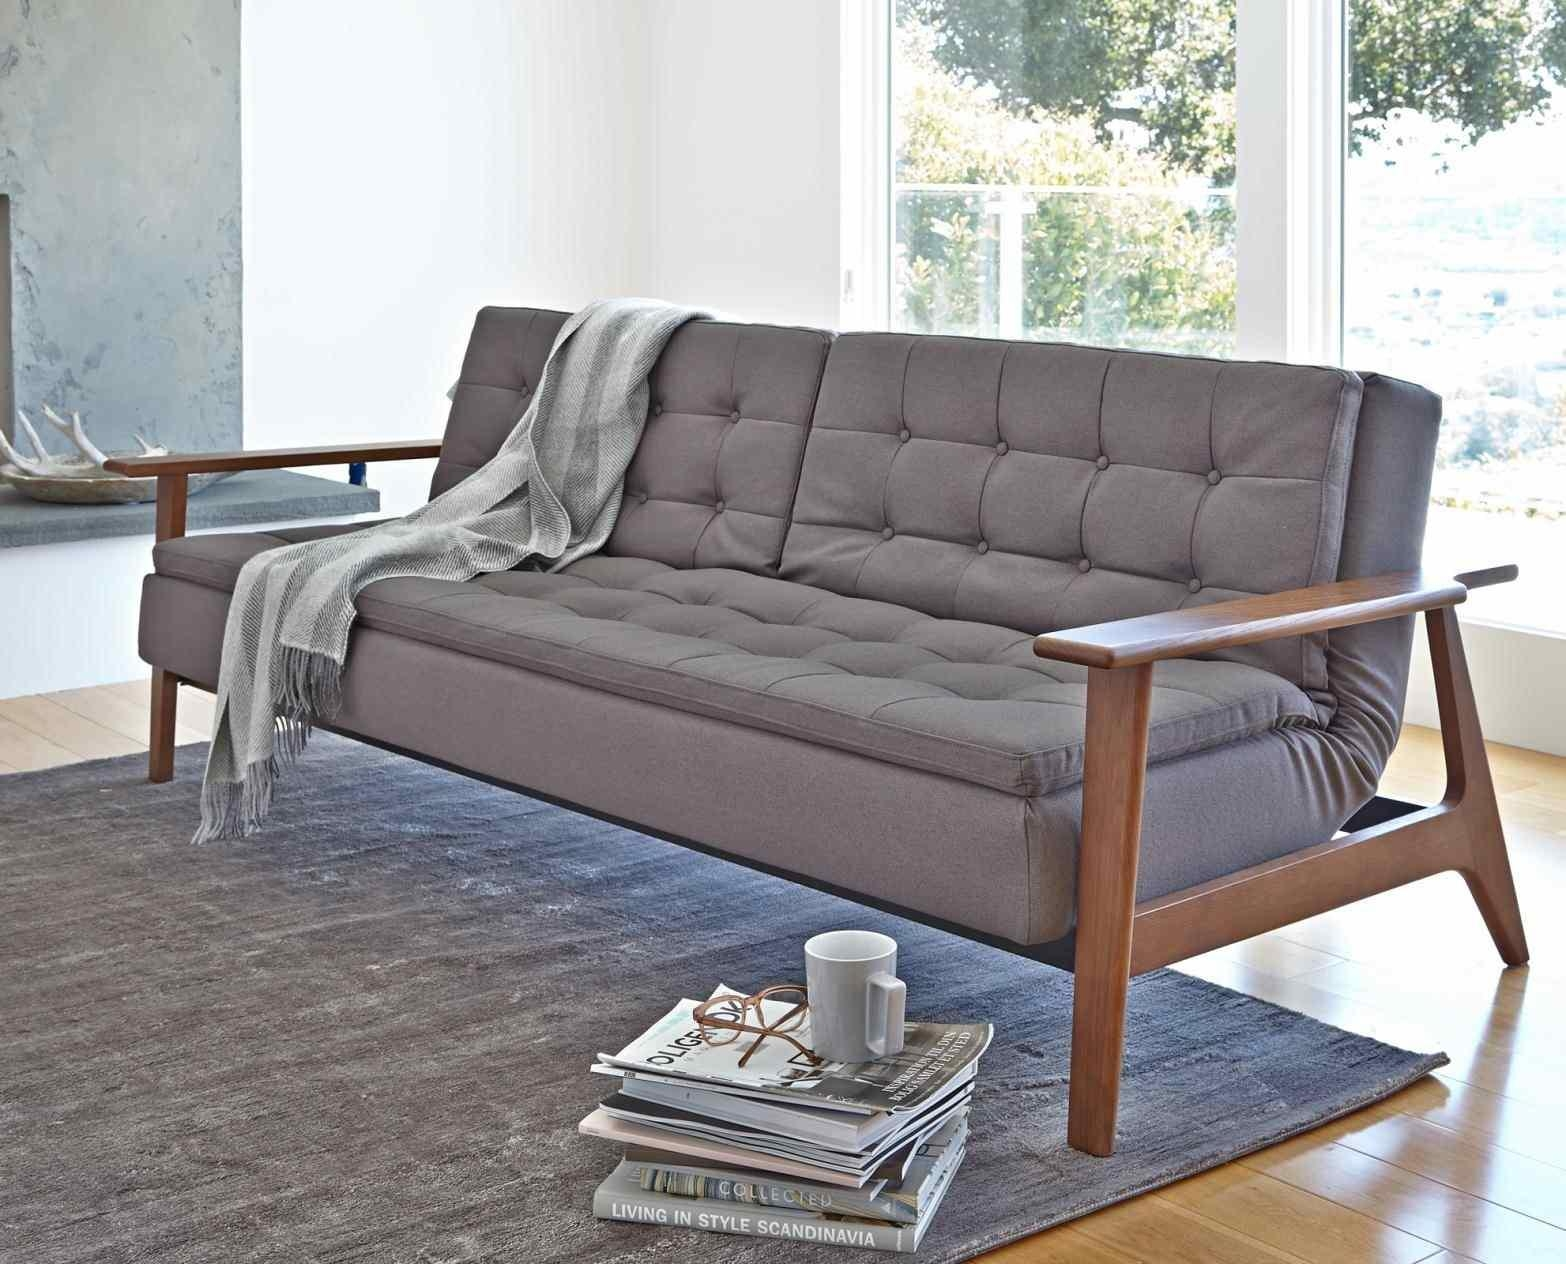 Sofas : Marvelous Queen Sofa Bed Deep Sofa Sofa Throws Leather Pertaining To Cheap Throws For Sofas (View 12 of 21)